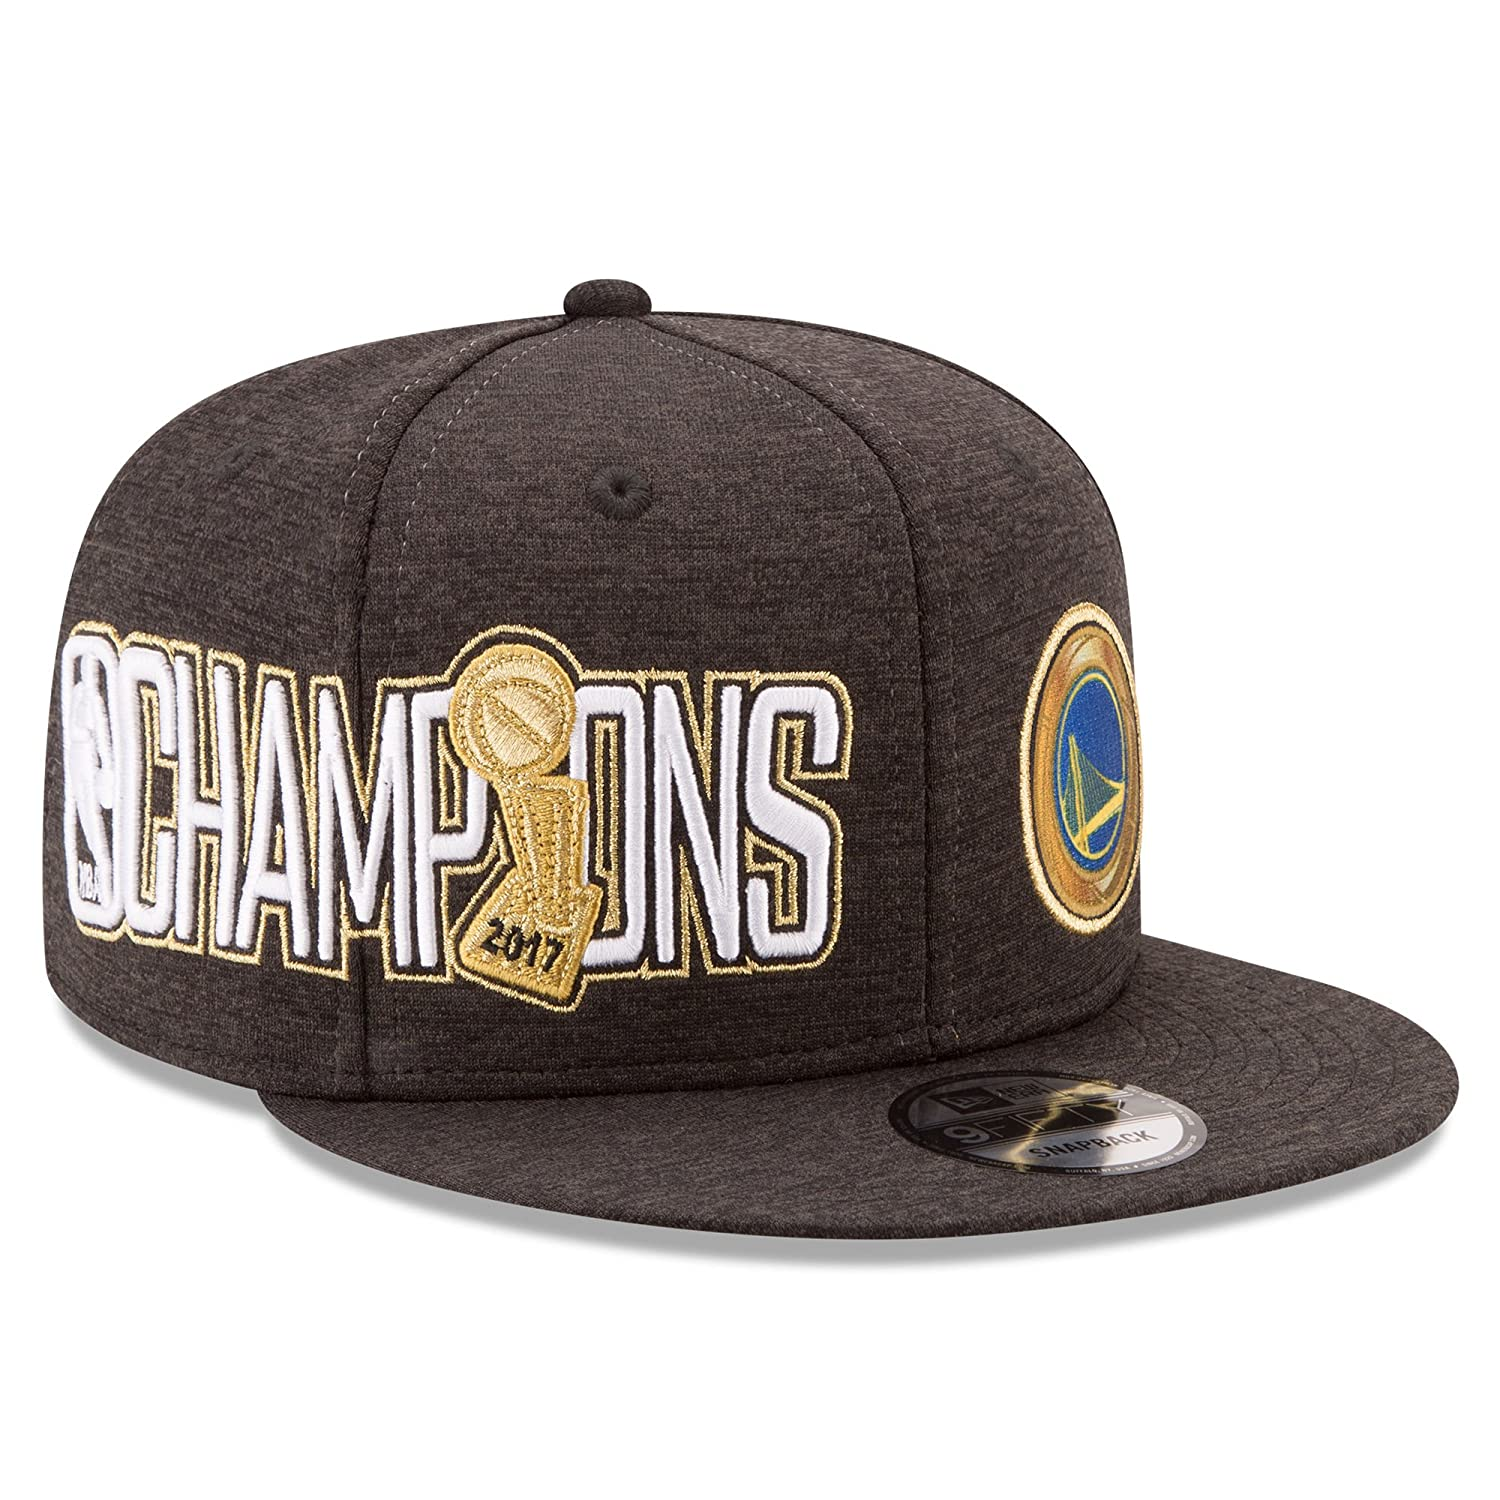 new style 2a34d 919ee Top1  Golden State Warriors New Era 9FIFTY 2017 NBA Finals Champions  Adjustable Snapback Hat   Cap